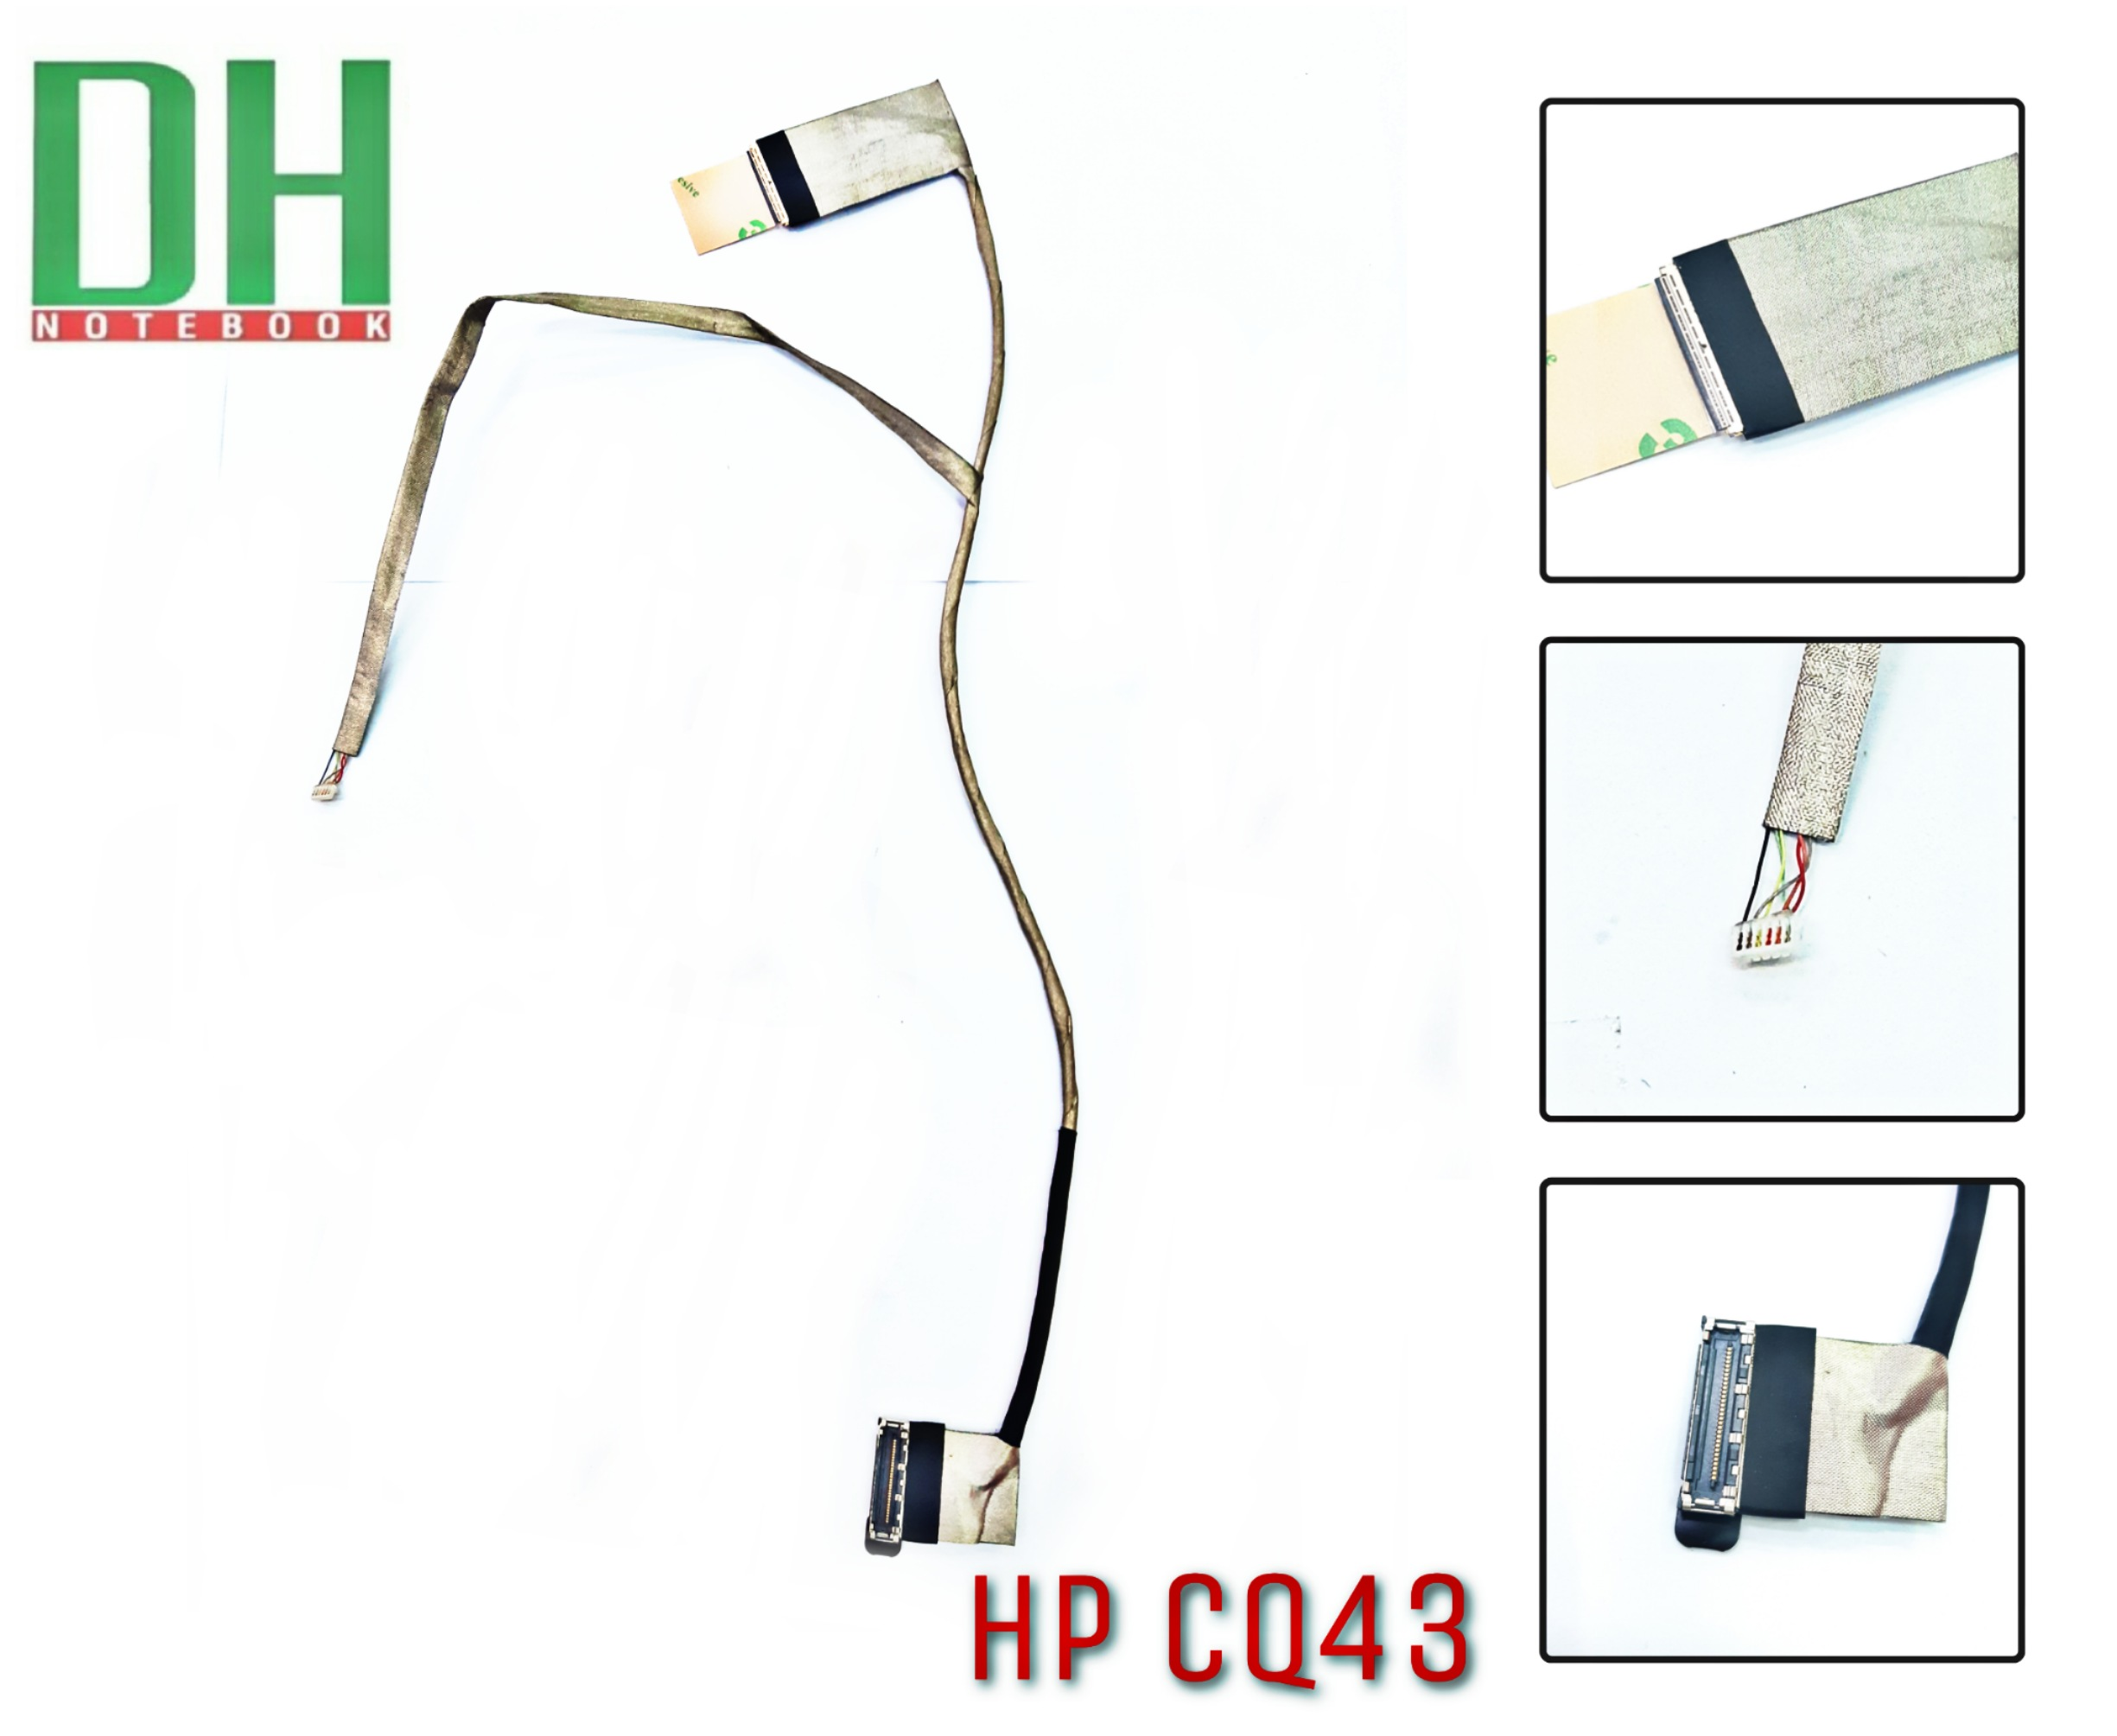 HP CQ43 Video Cable